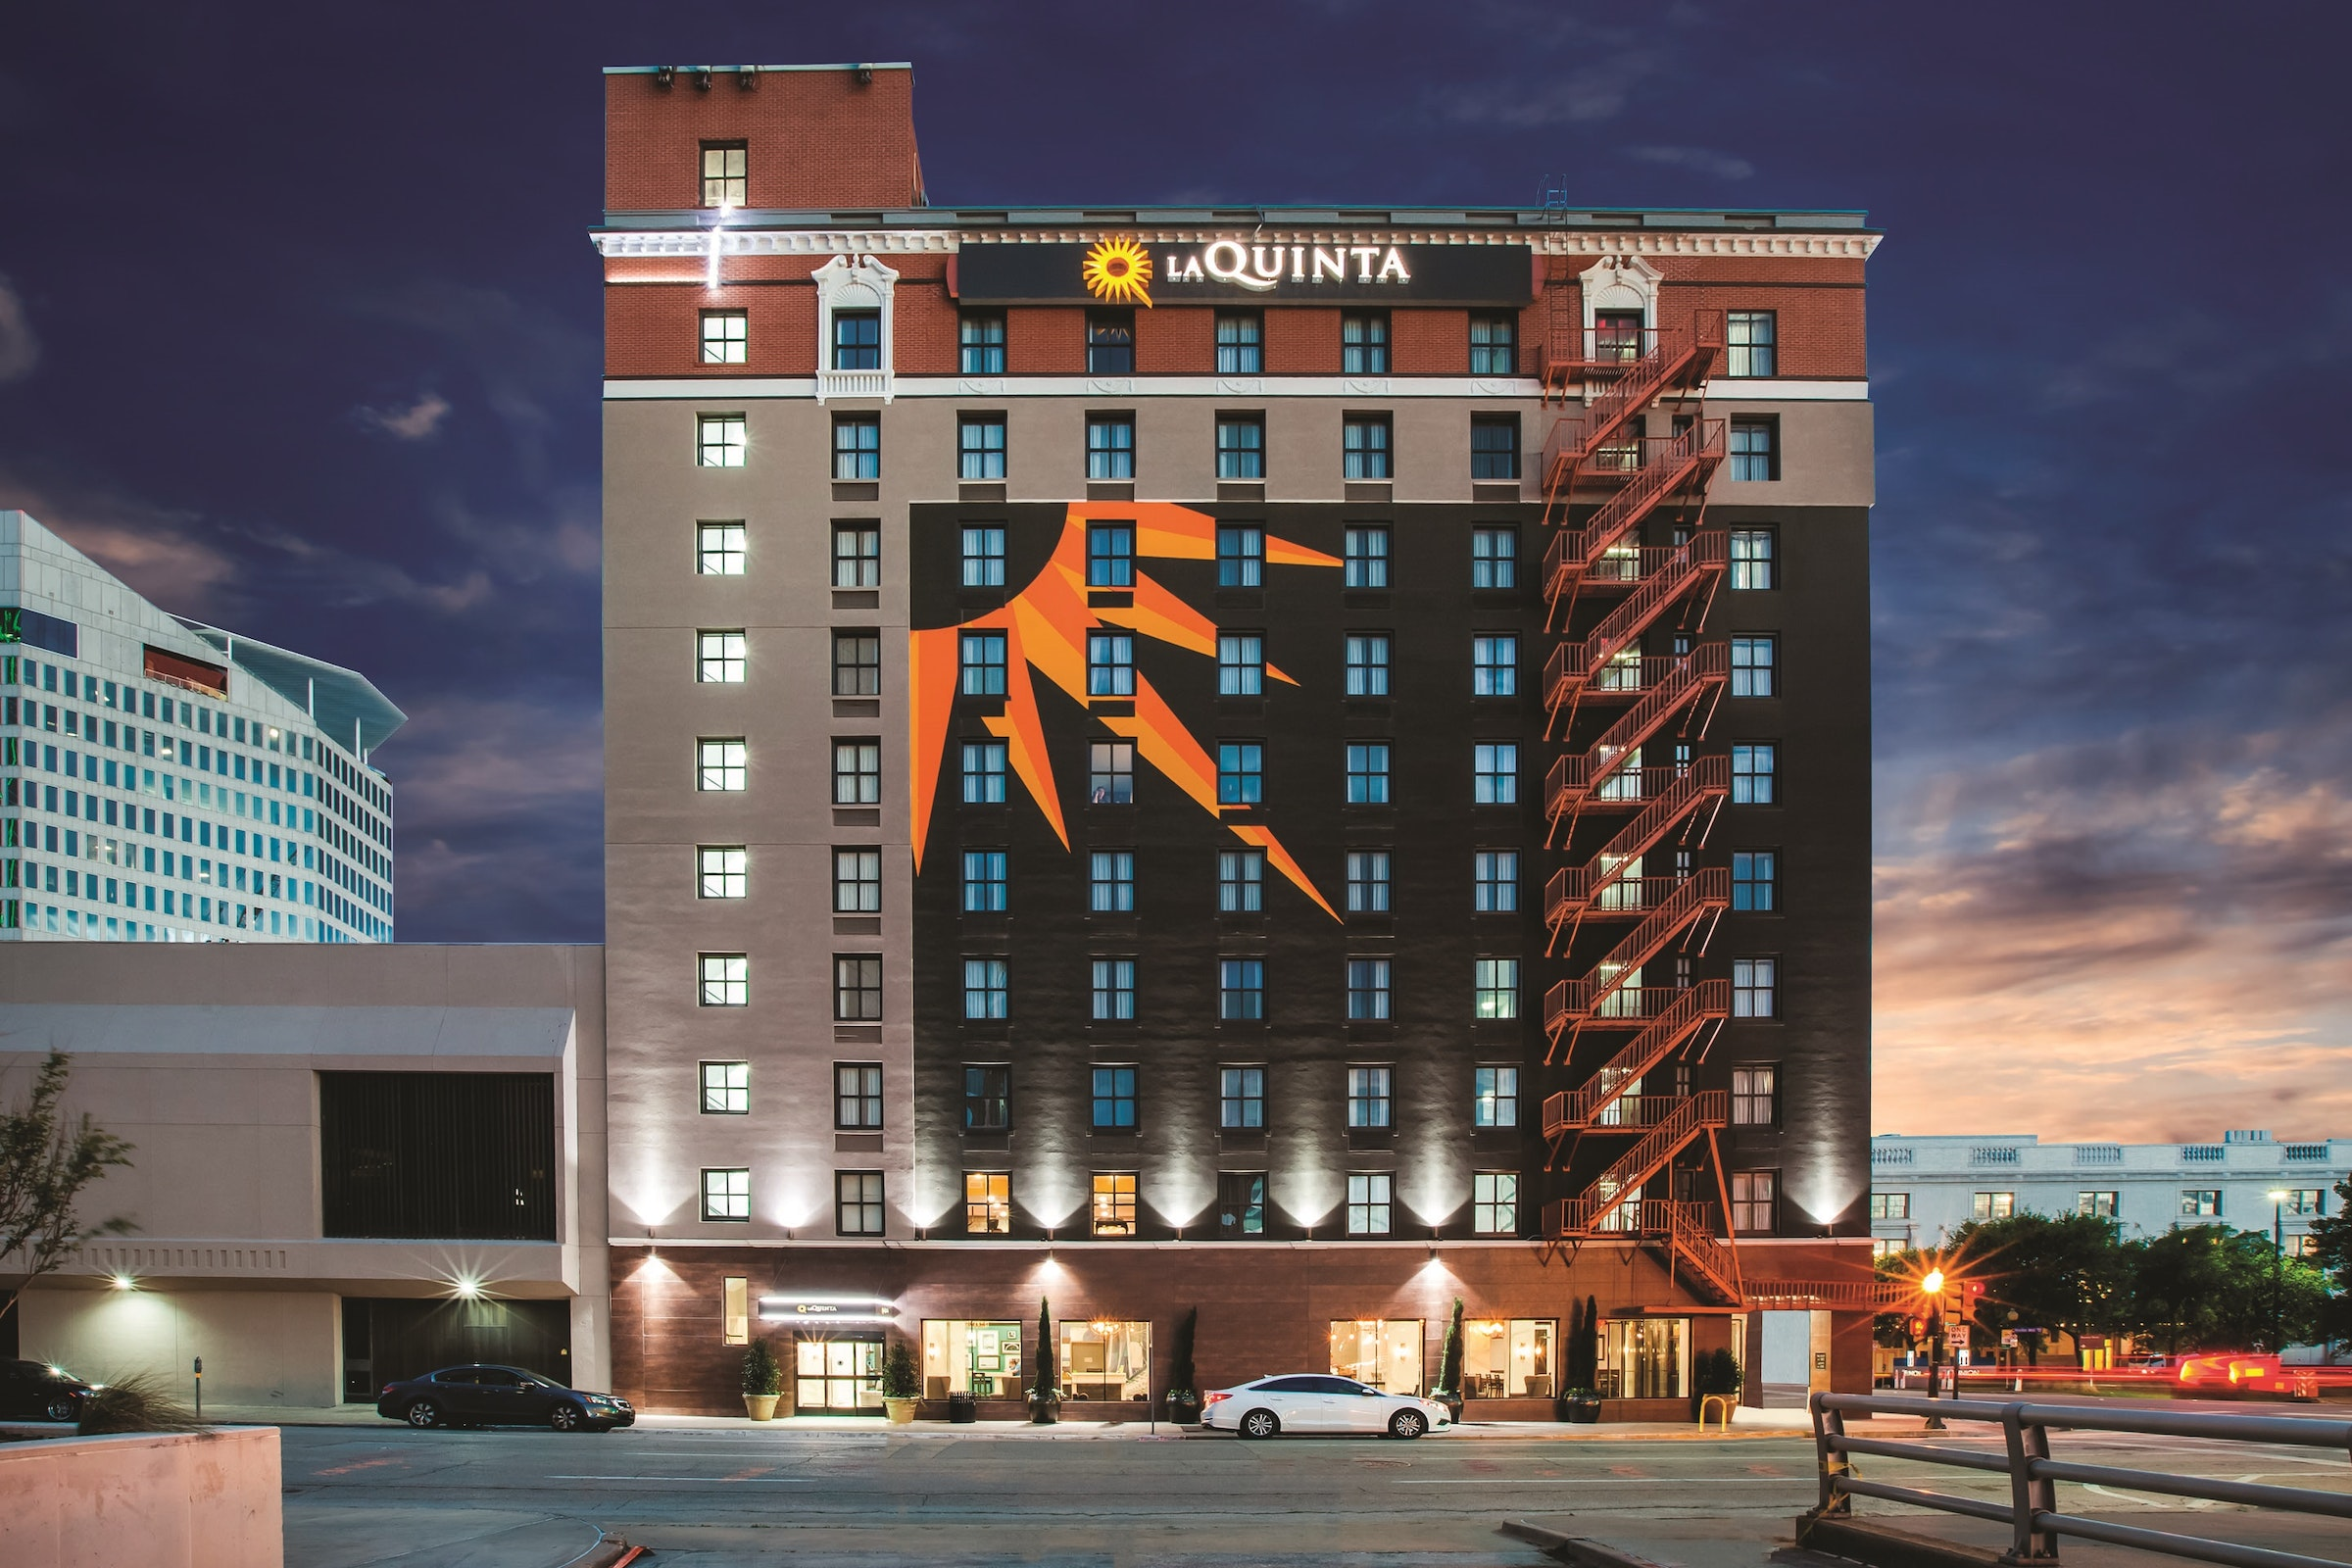 La Quinta Inn & Suites Dallas Downtown in Beyond Dallas